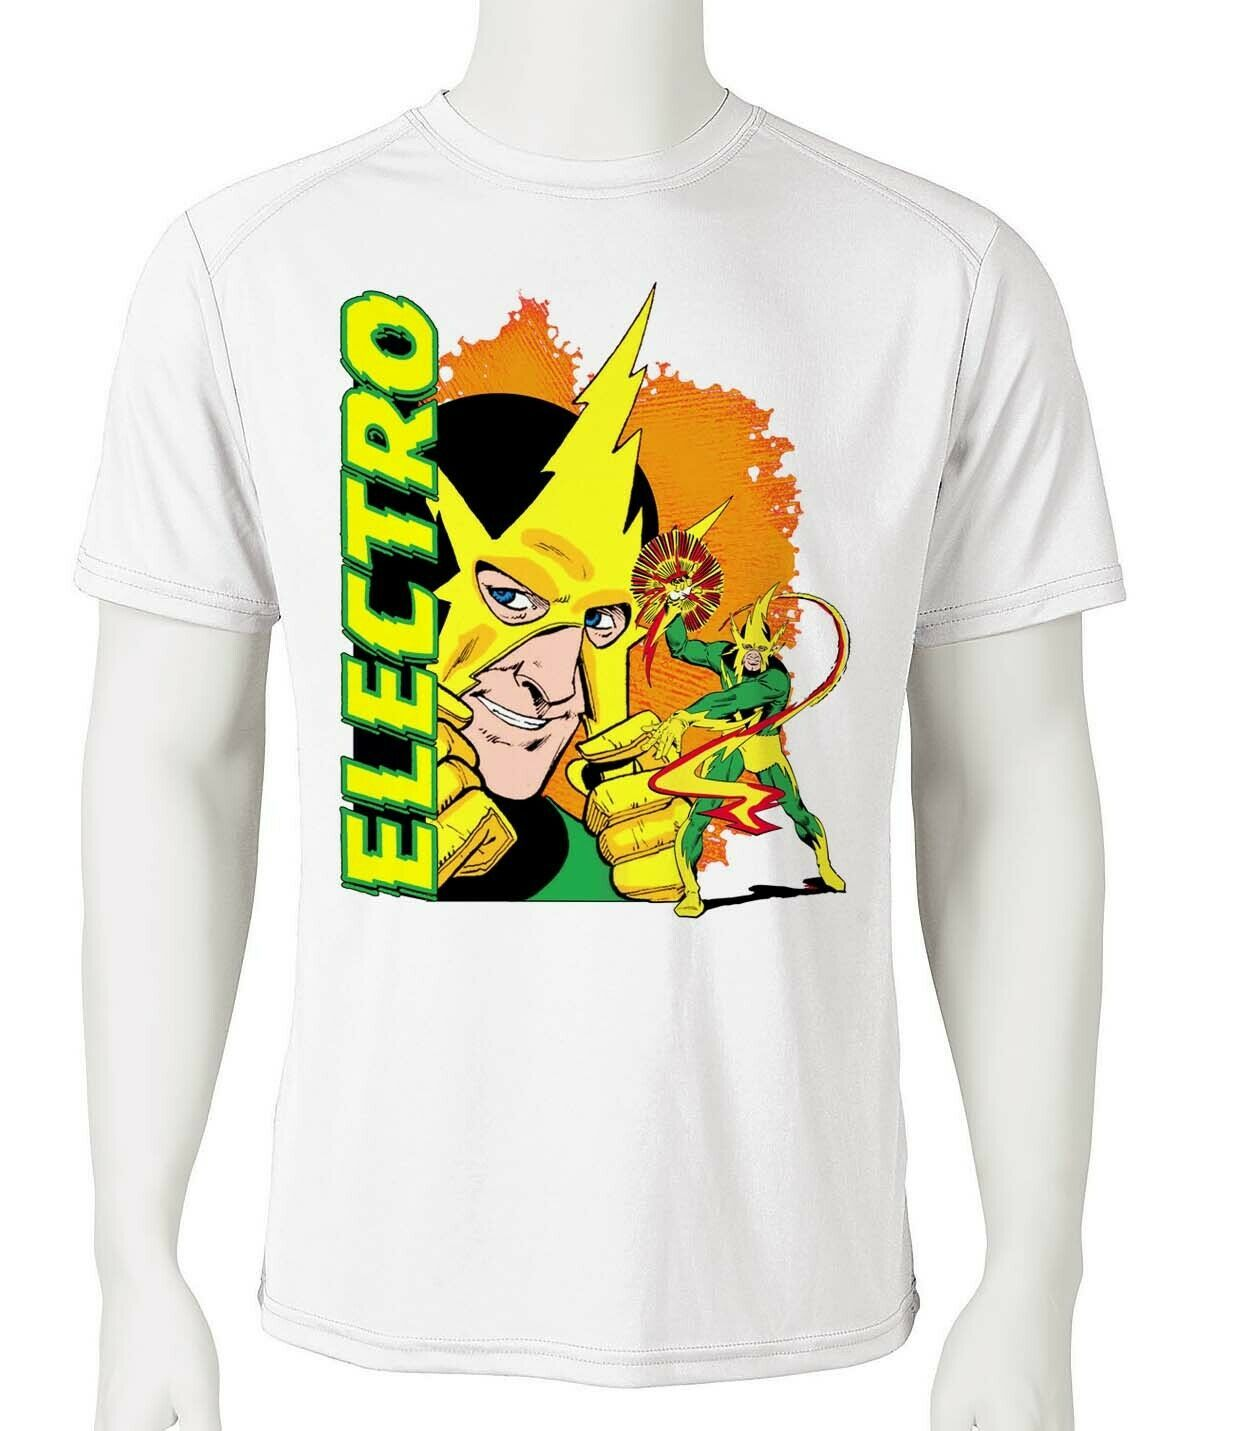 Electro Dri Fit graphic T-shirt moisture wicking superhero comic book SPF tee